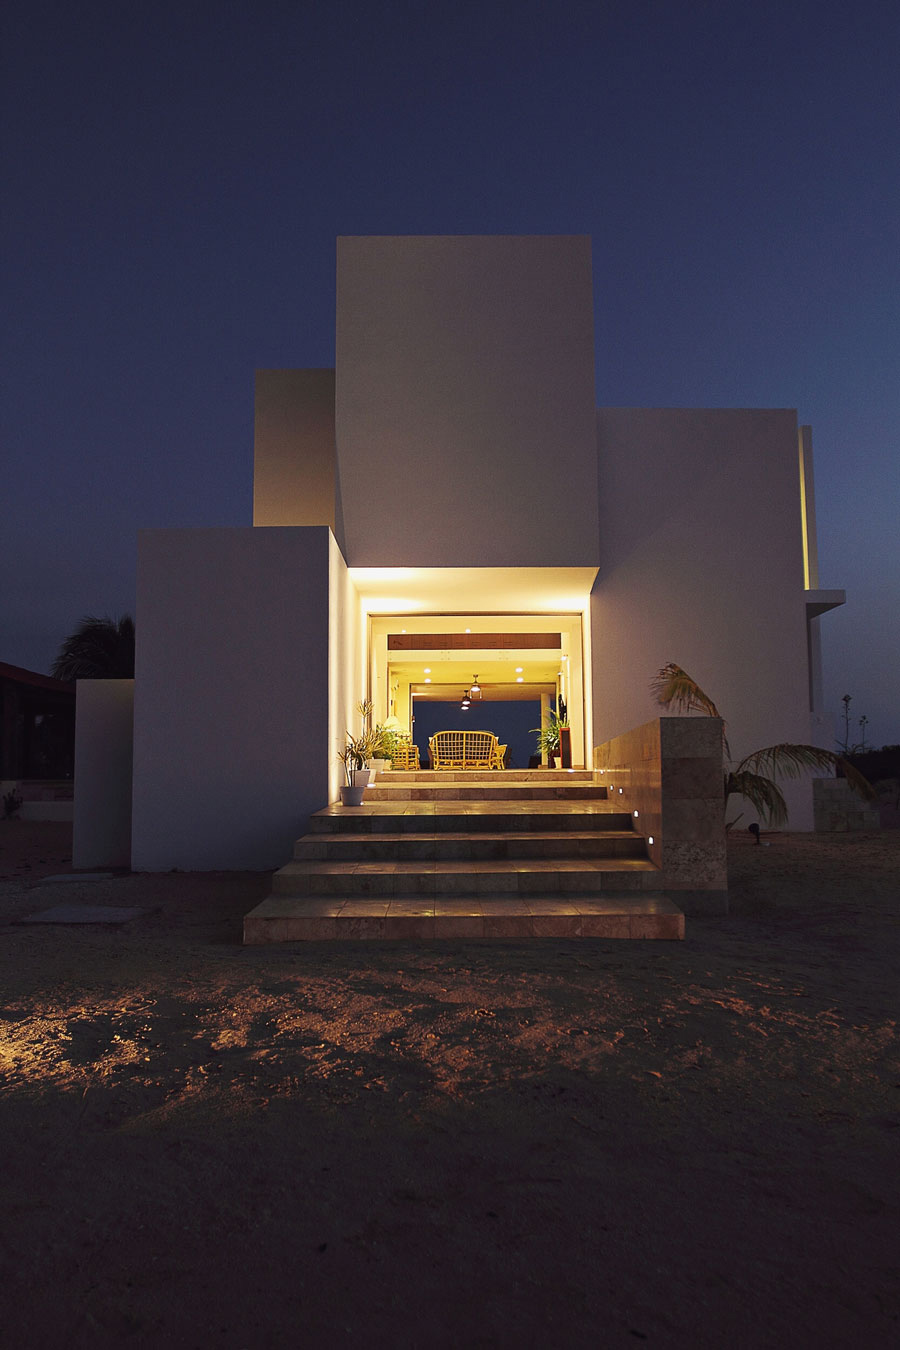 Entrance, Steps, Lighting, Tuunich Kanab in San Bruno, Mexico by Seijo Peon Arquitectos